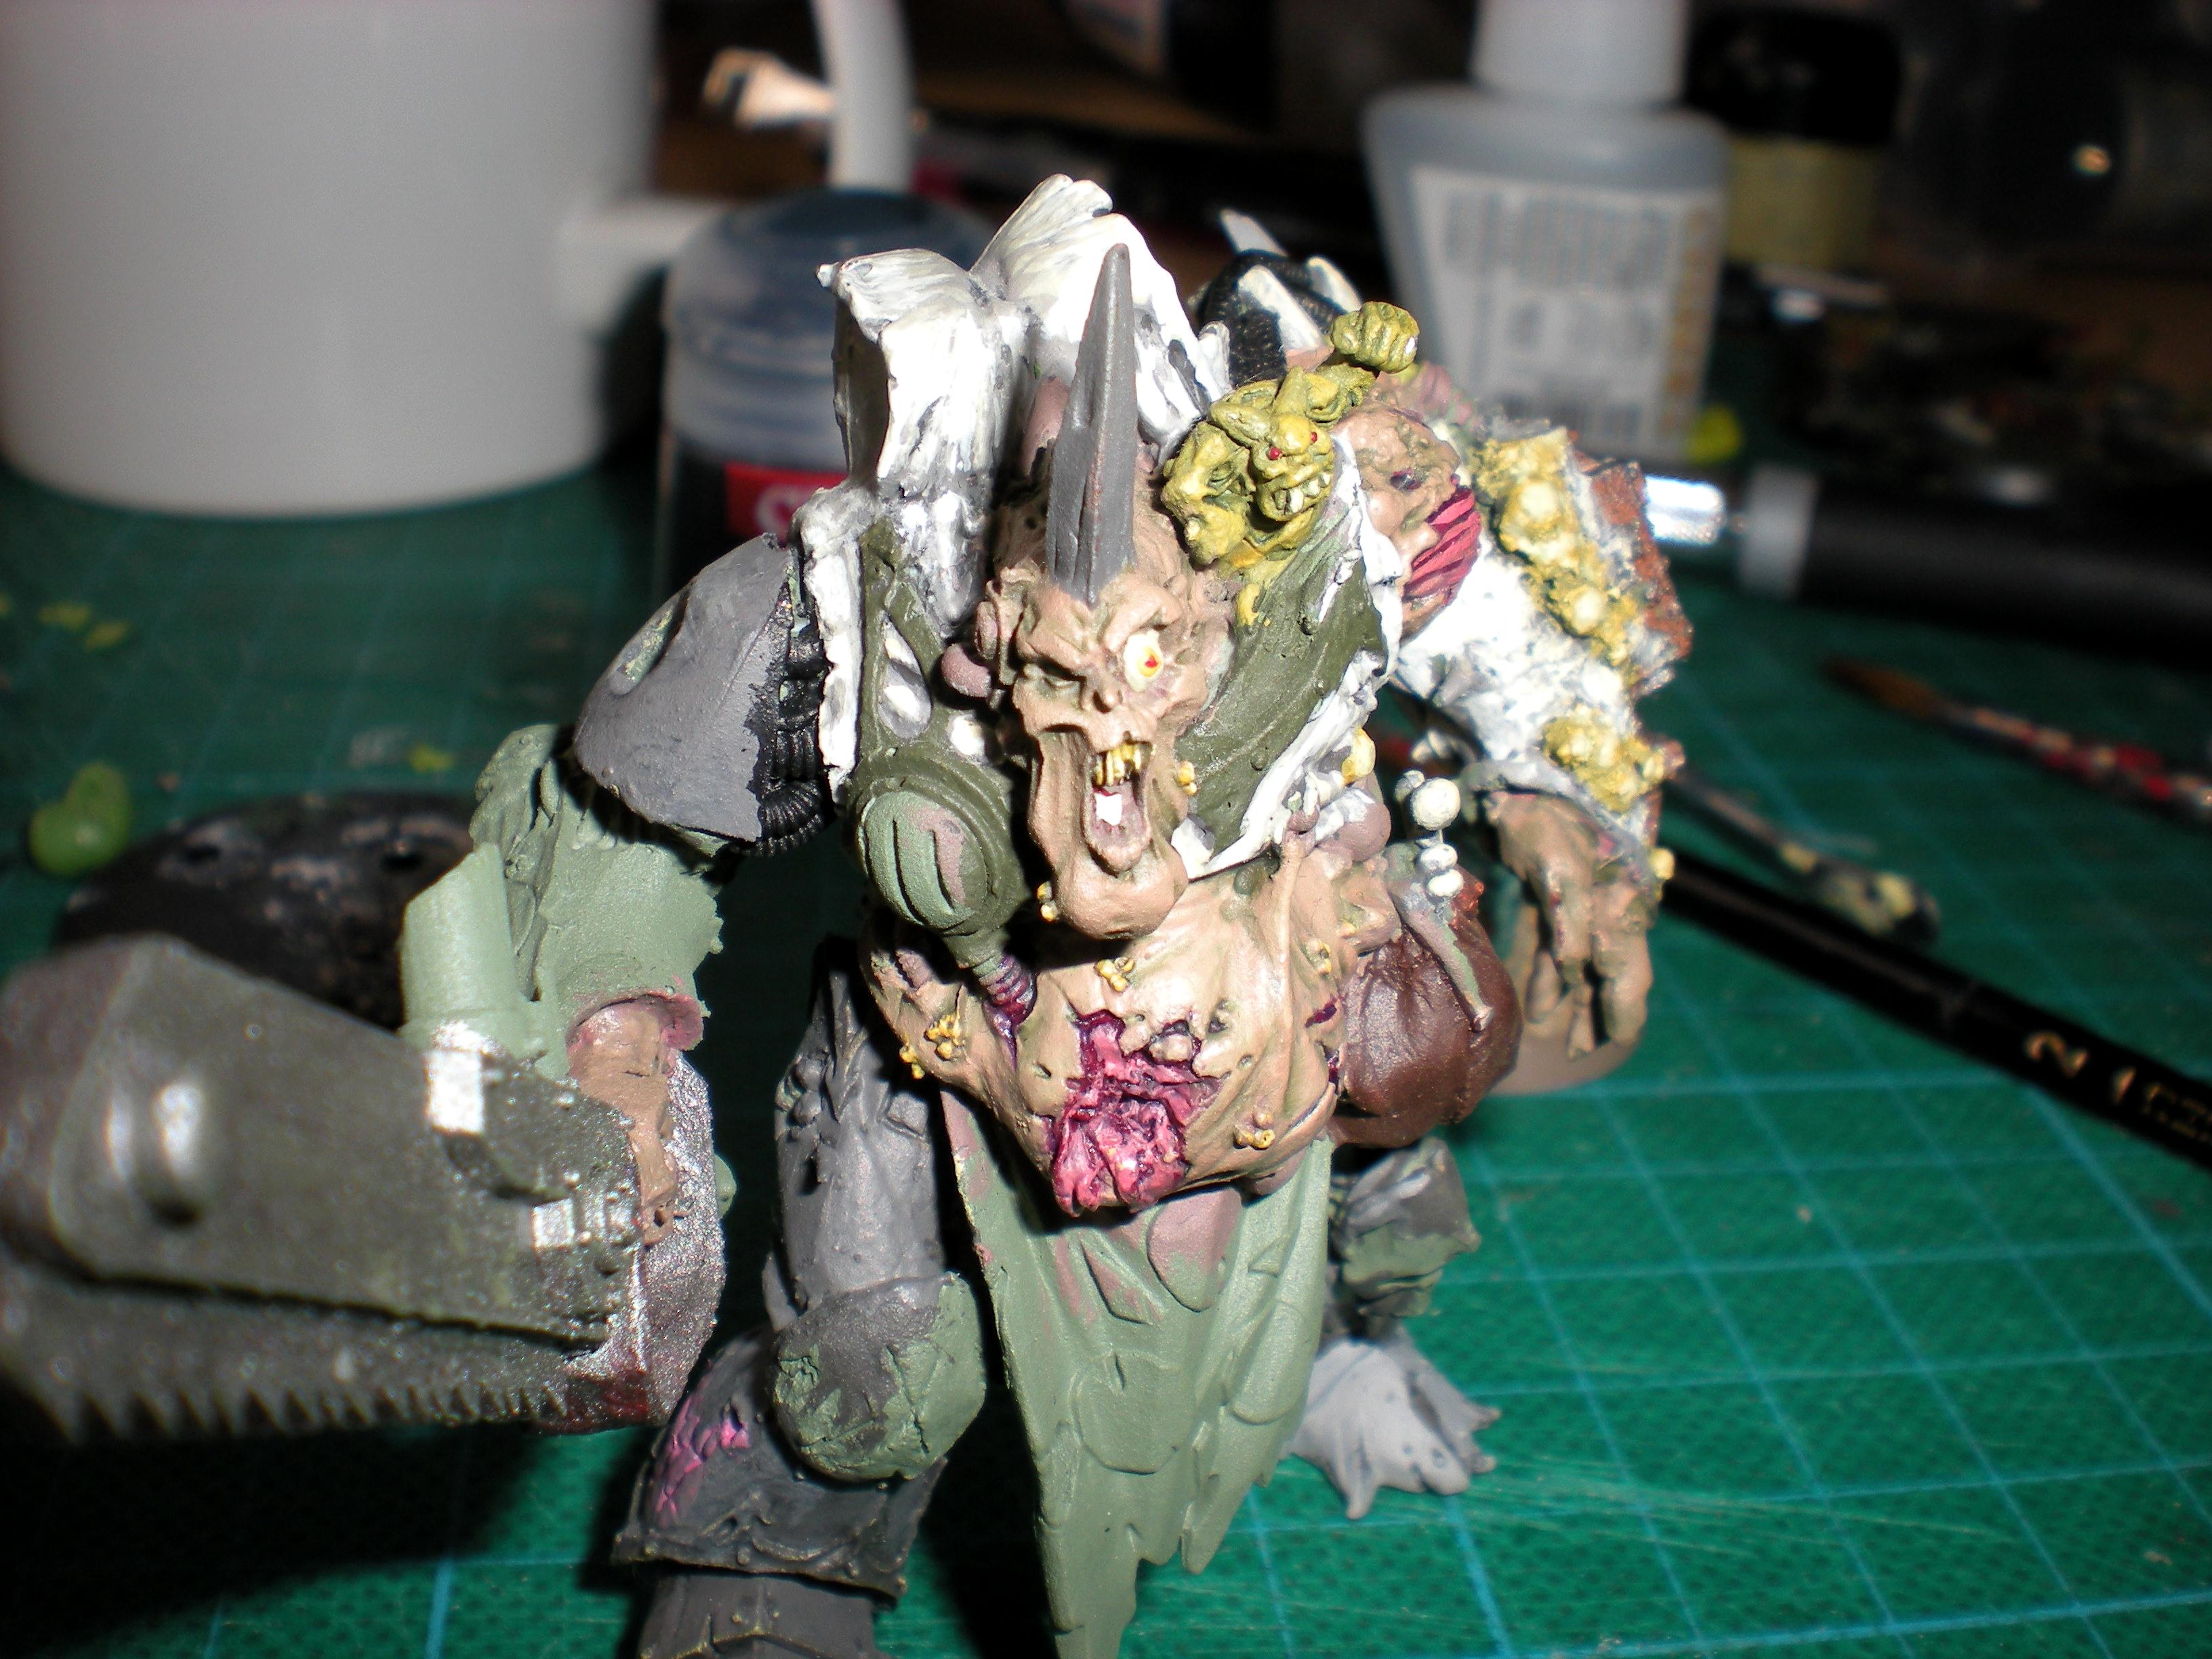 Chaos, Chaos Space Marines, Conversion, Cool, Daemons, Dp, Nurgle, Prince, Space Marines, Warhammer 40,000, Warhammer Fantasy